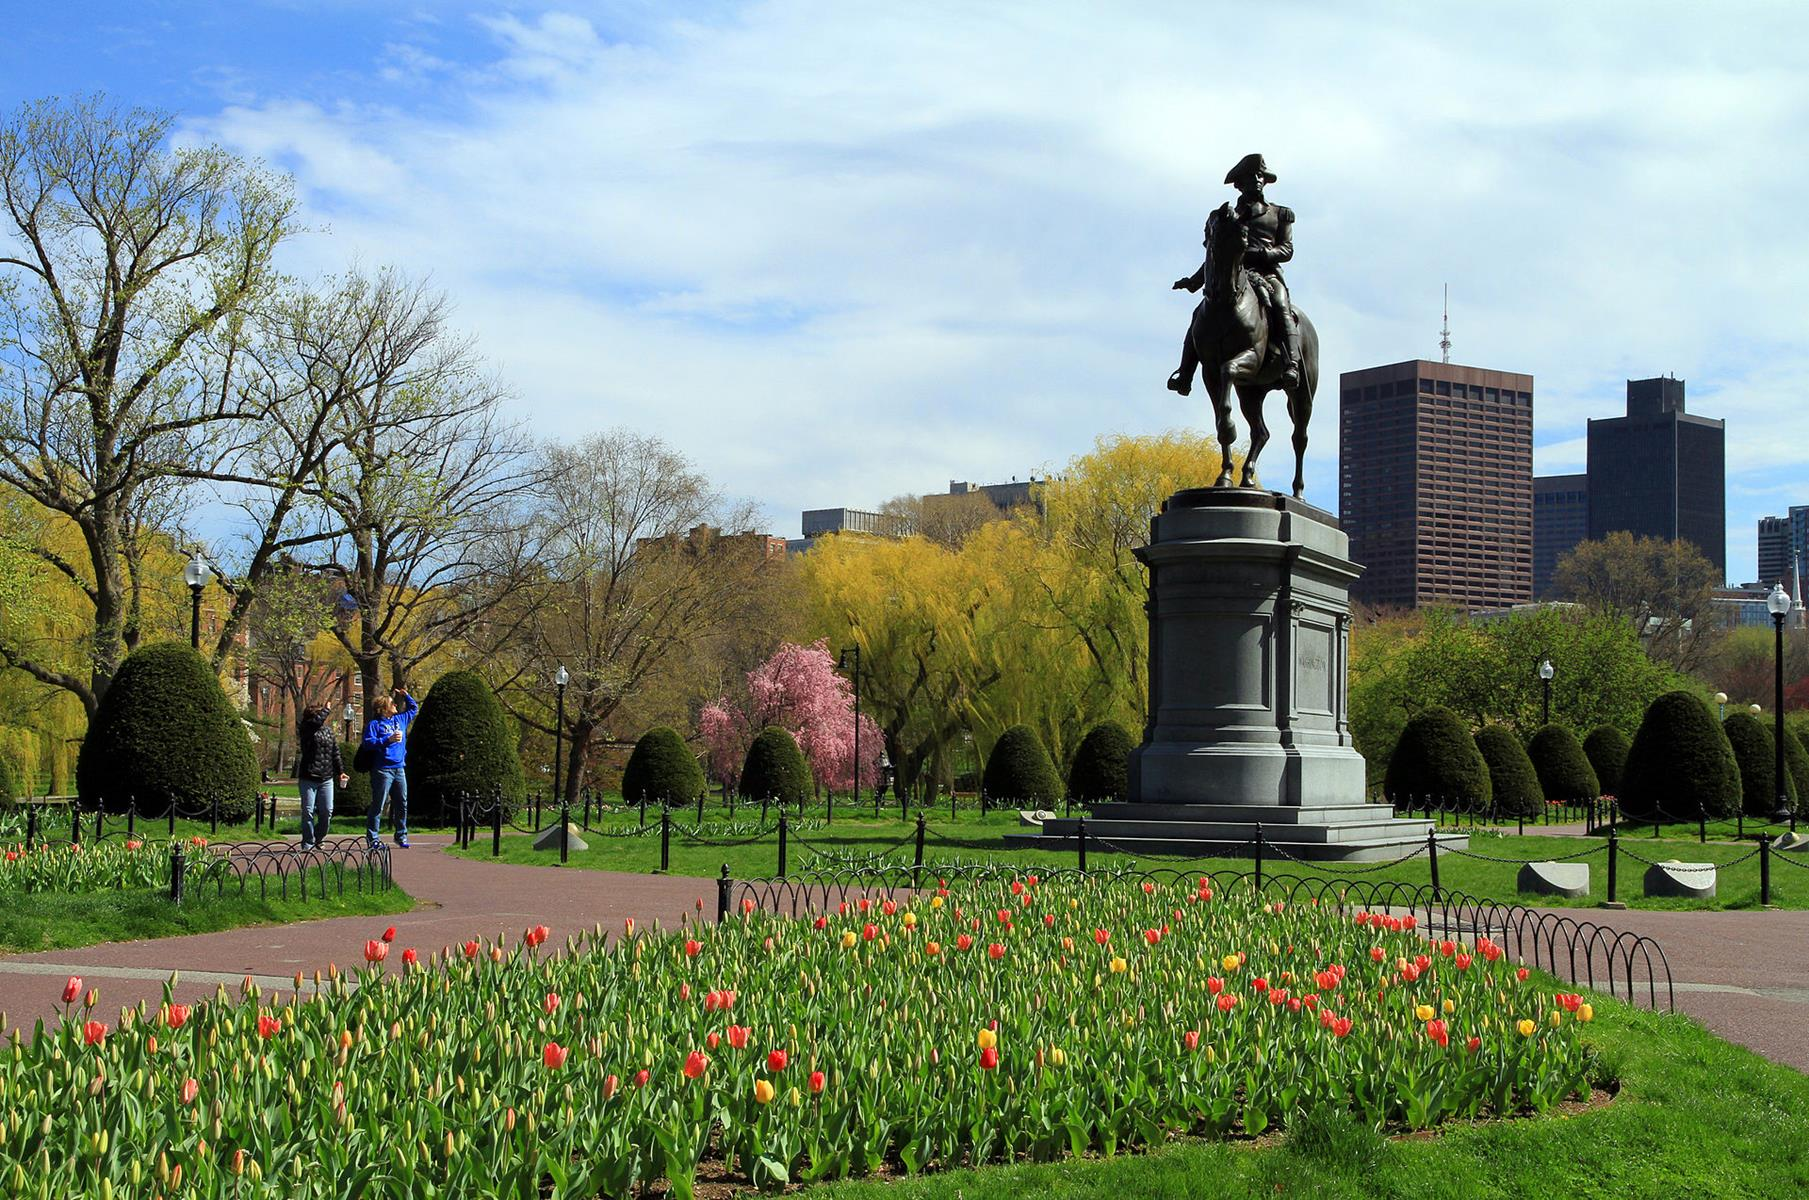 Top 5 Reasons to Make Boston Your Next Student Trip Destination